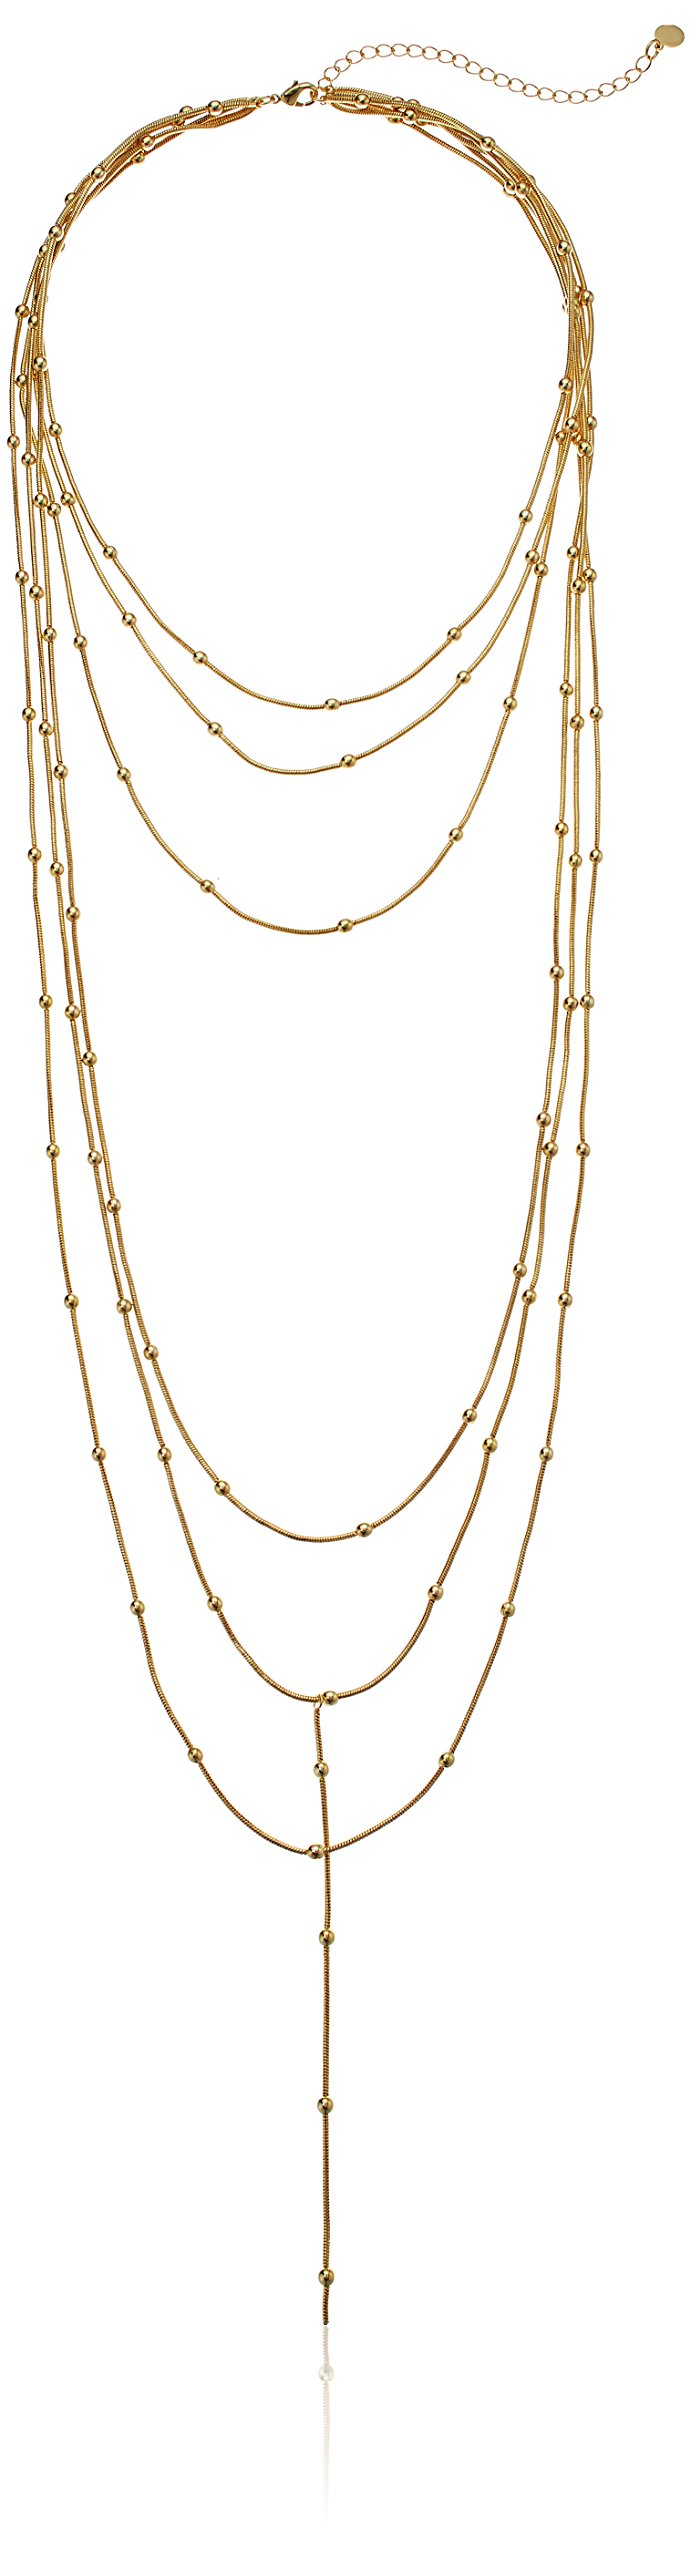 Jules Smith Womens Aida Layered Necklace, Gold, One Size